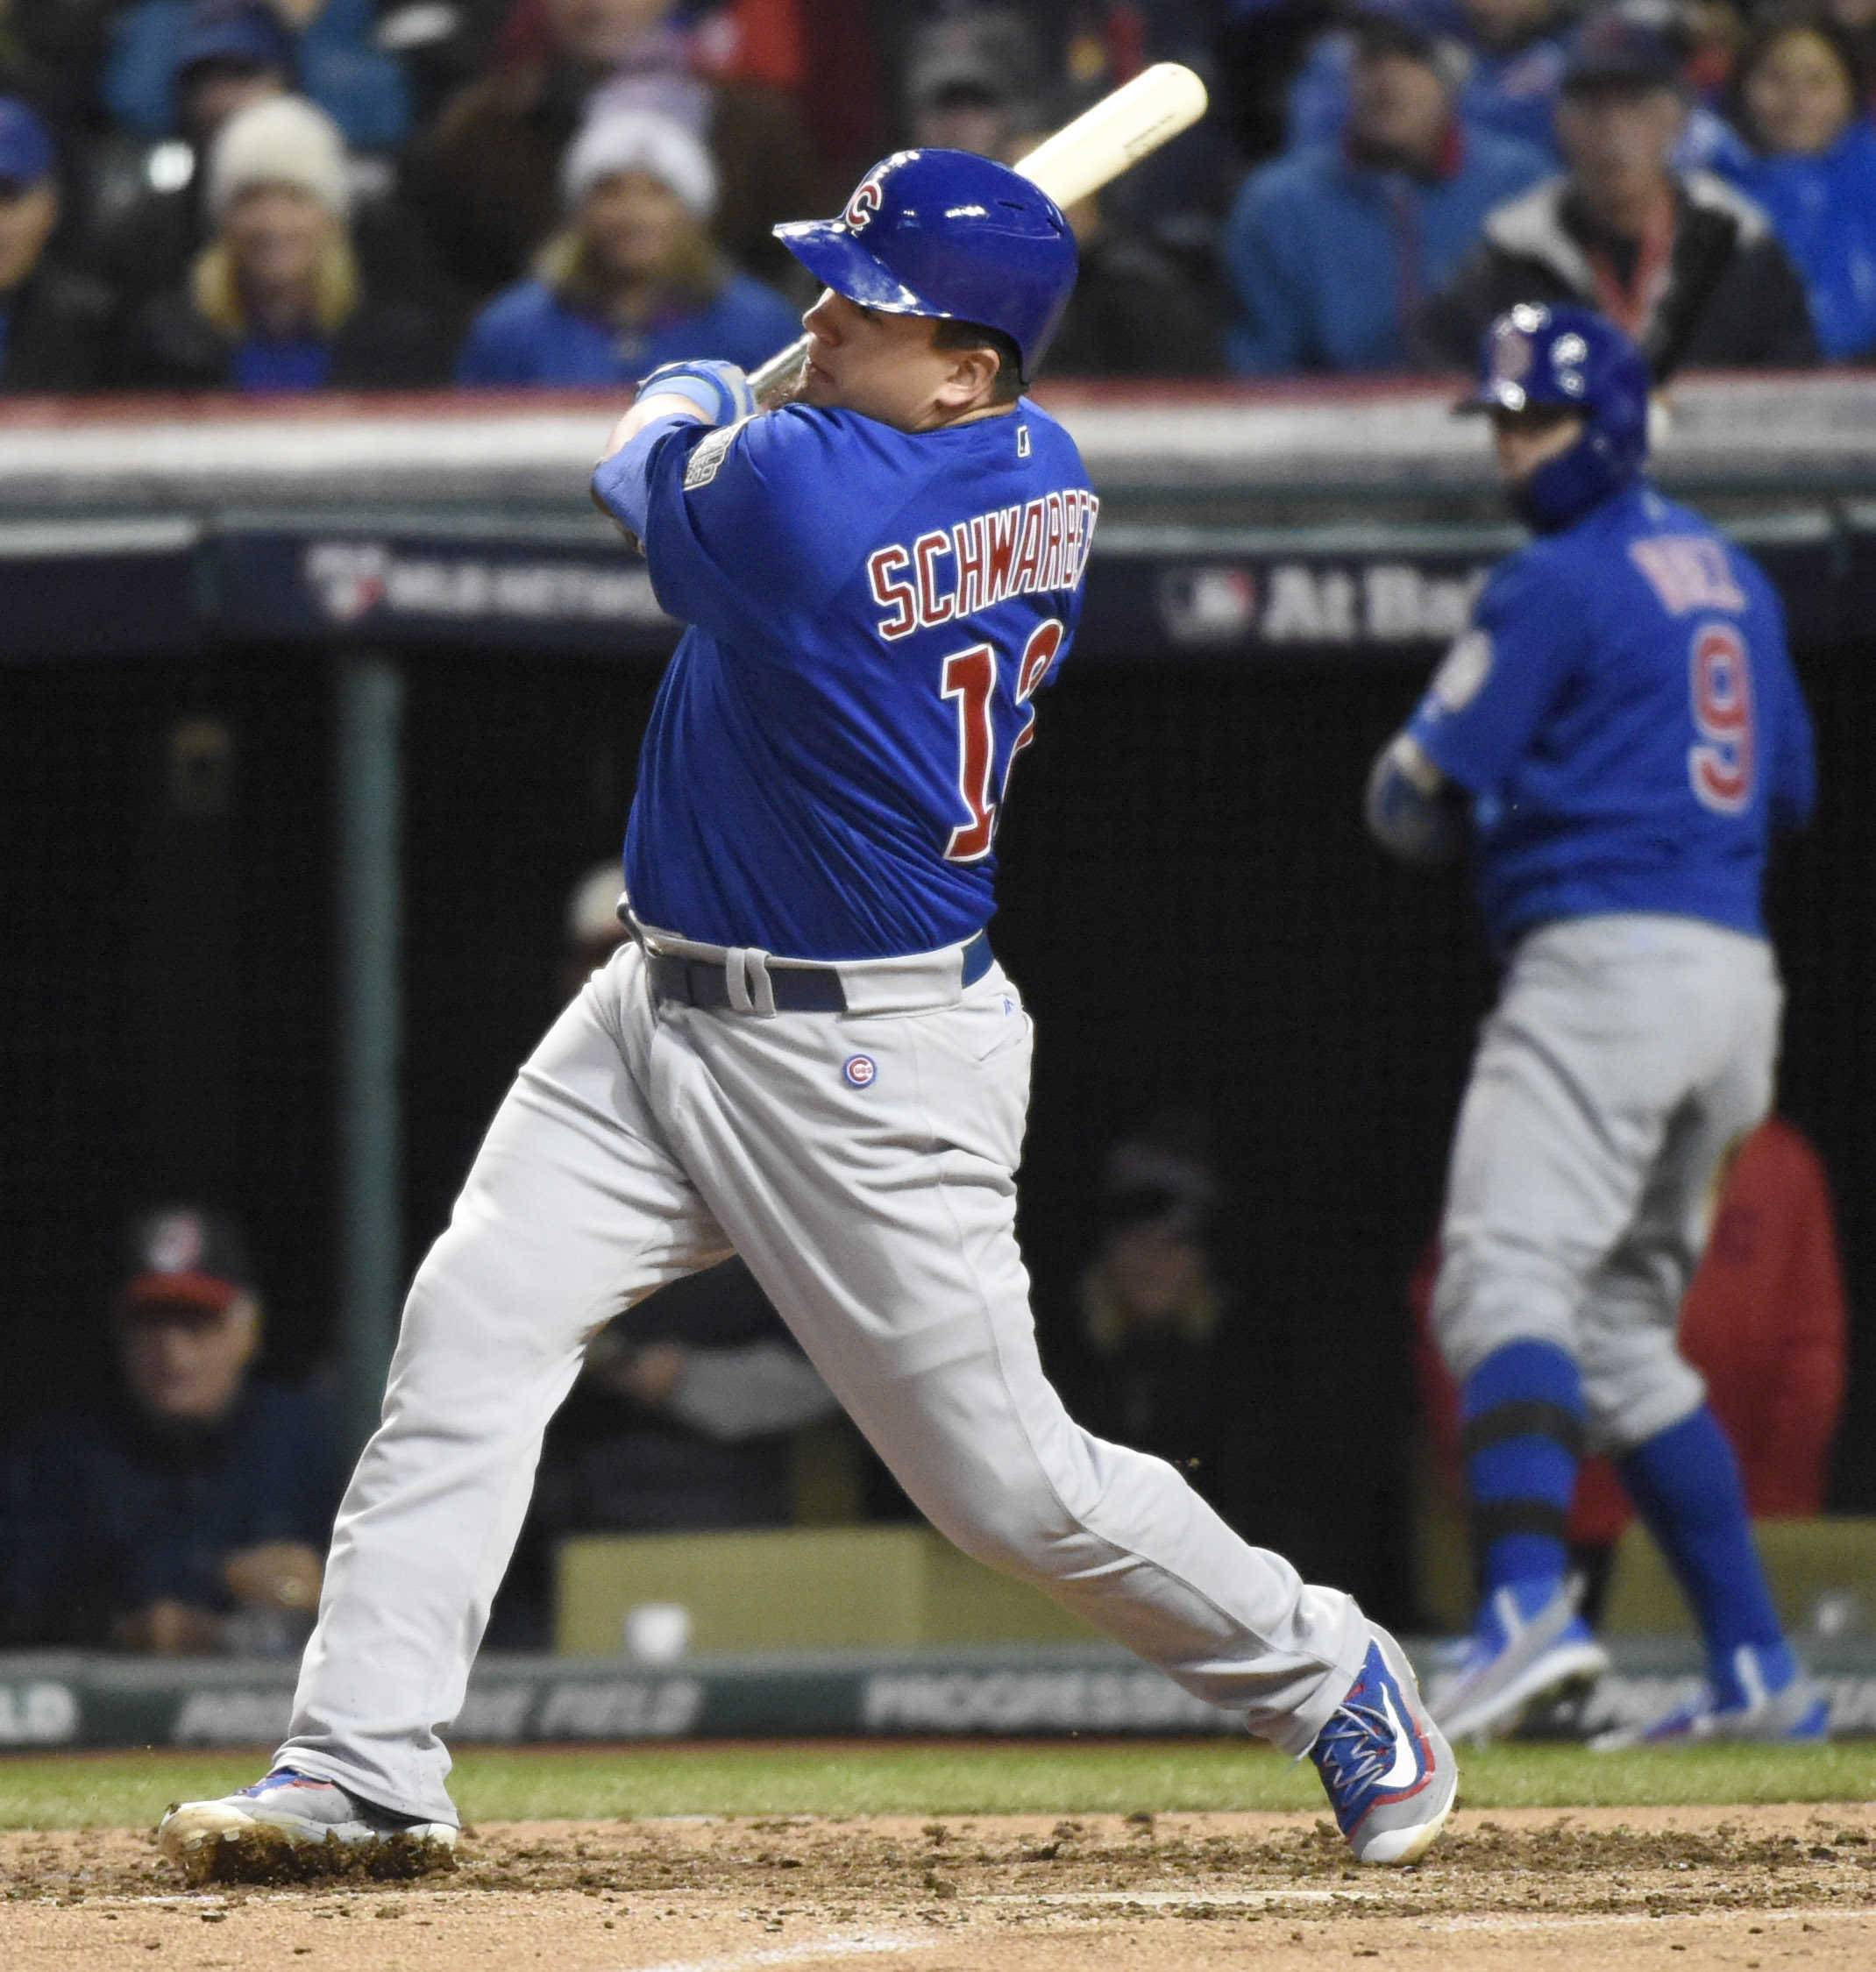 Chicago Cubs designated hitter Kyle Schwarber hits an RBI single in the third inning during Game 2 of the Major League Baseball World Series. Schwarber was able to play in the Series after recovering from full tears to the ACL and LCL in his left knee.